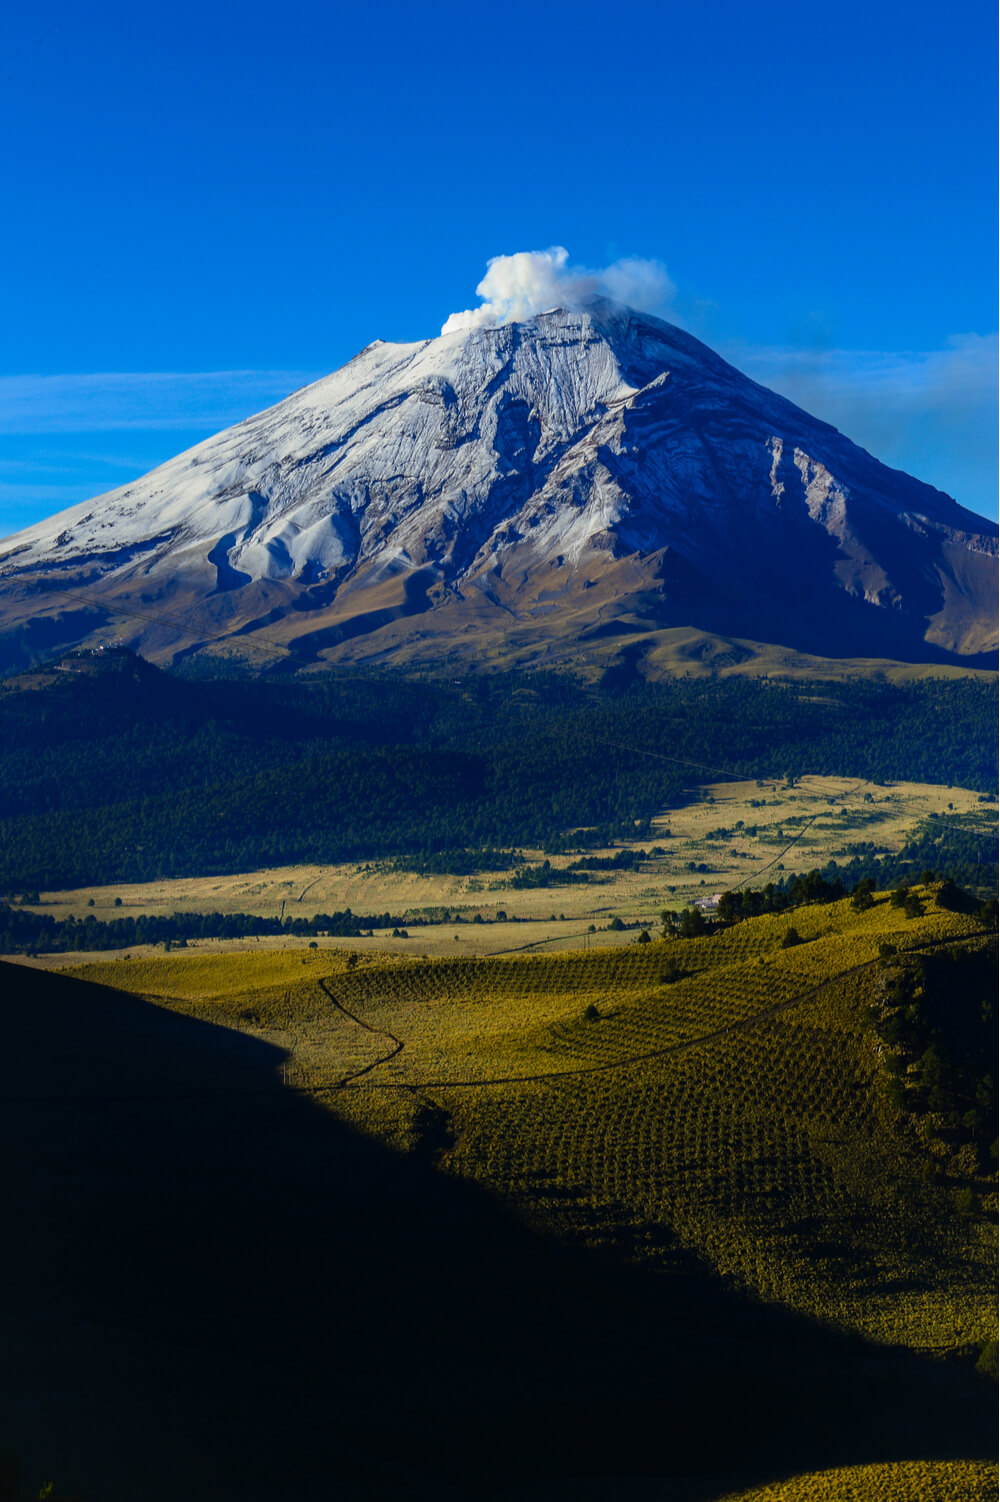 """Popocatepetl is one of the active volcanoes in the """"Ring of Fire""""."""